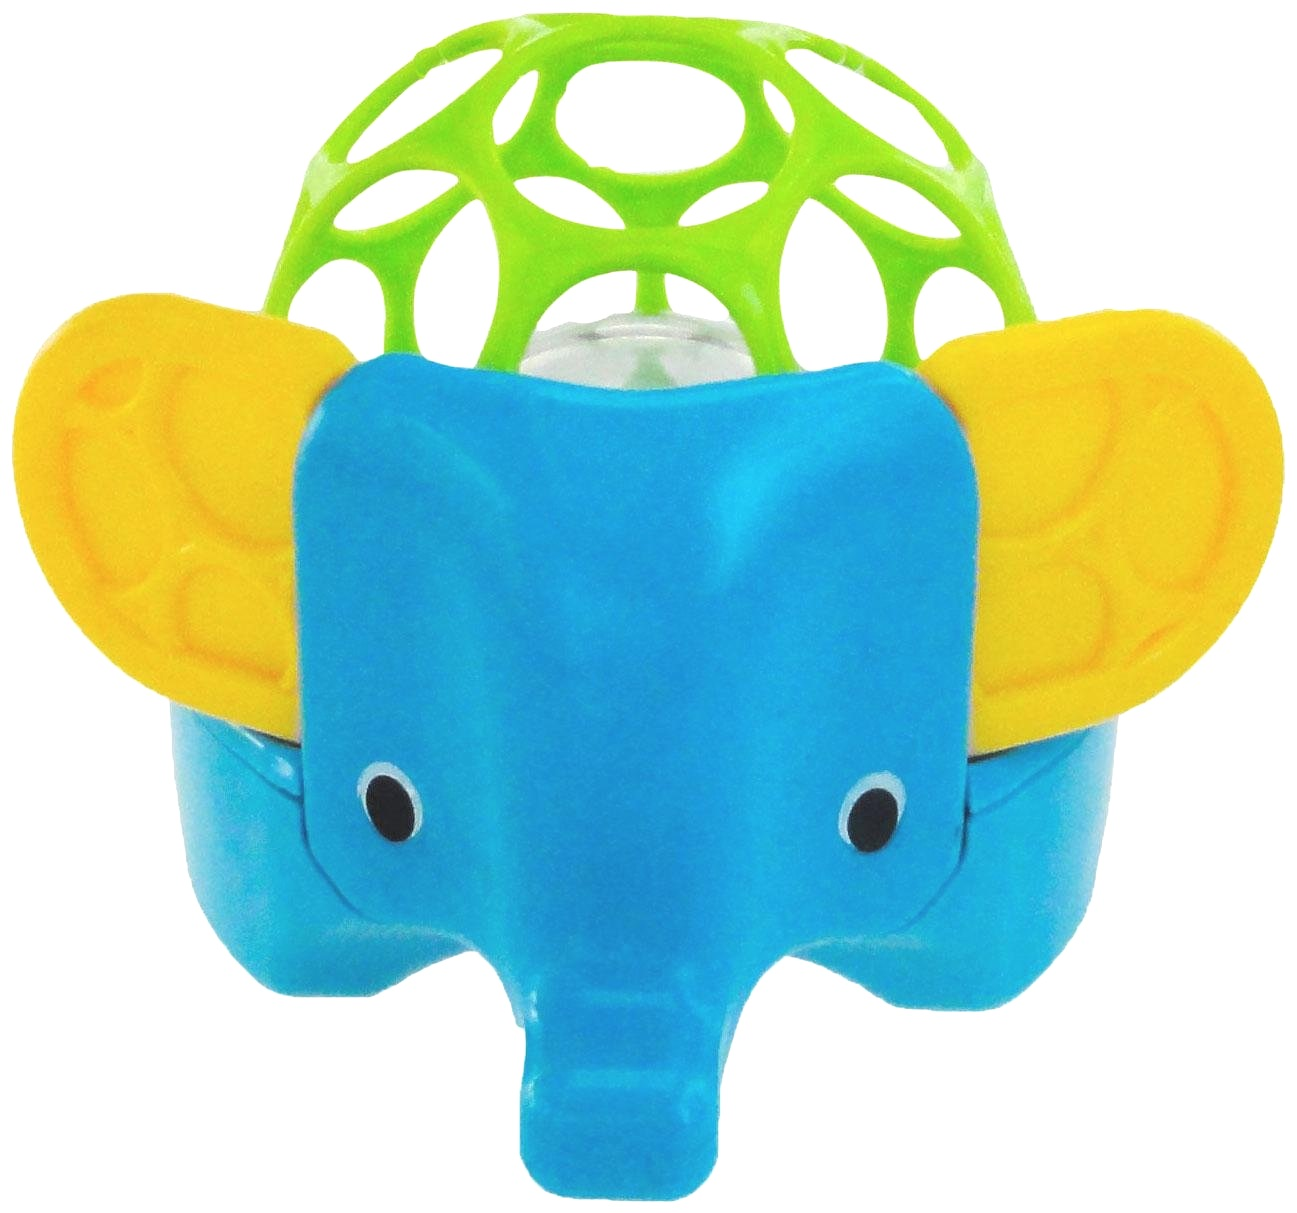 O Ball Rollie Rattles Toy Styles may vary. Multi-Colored